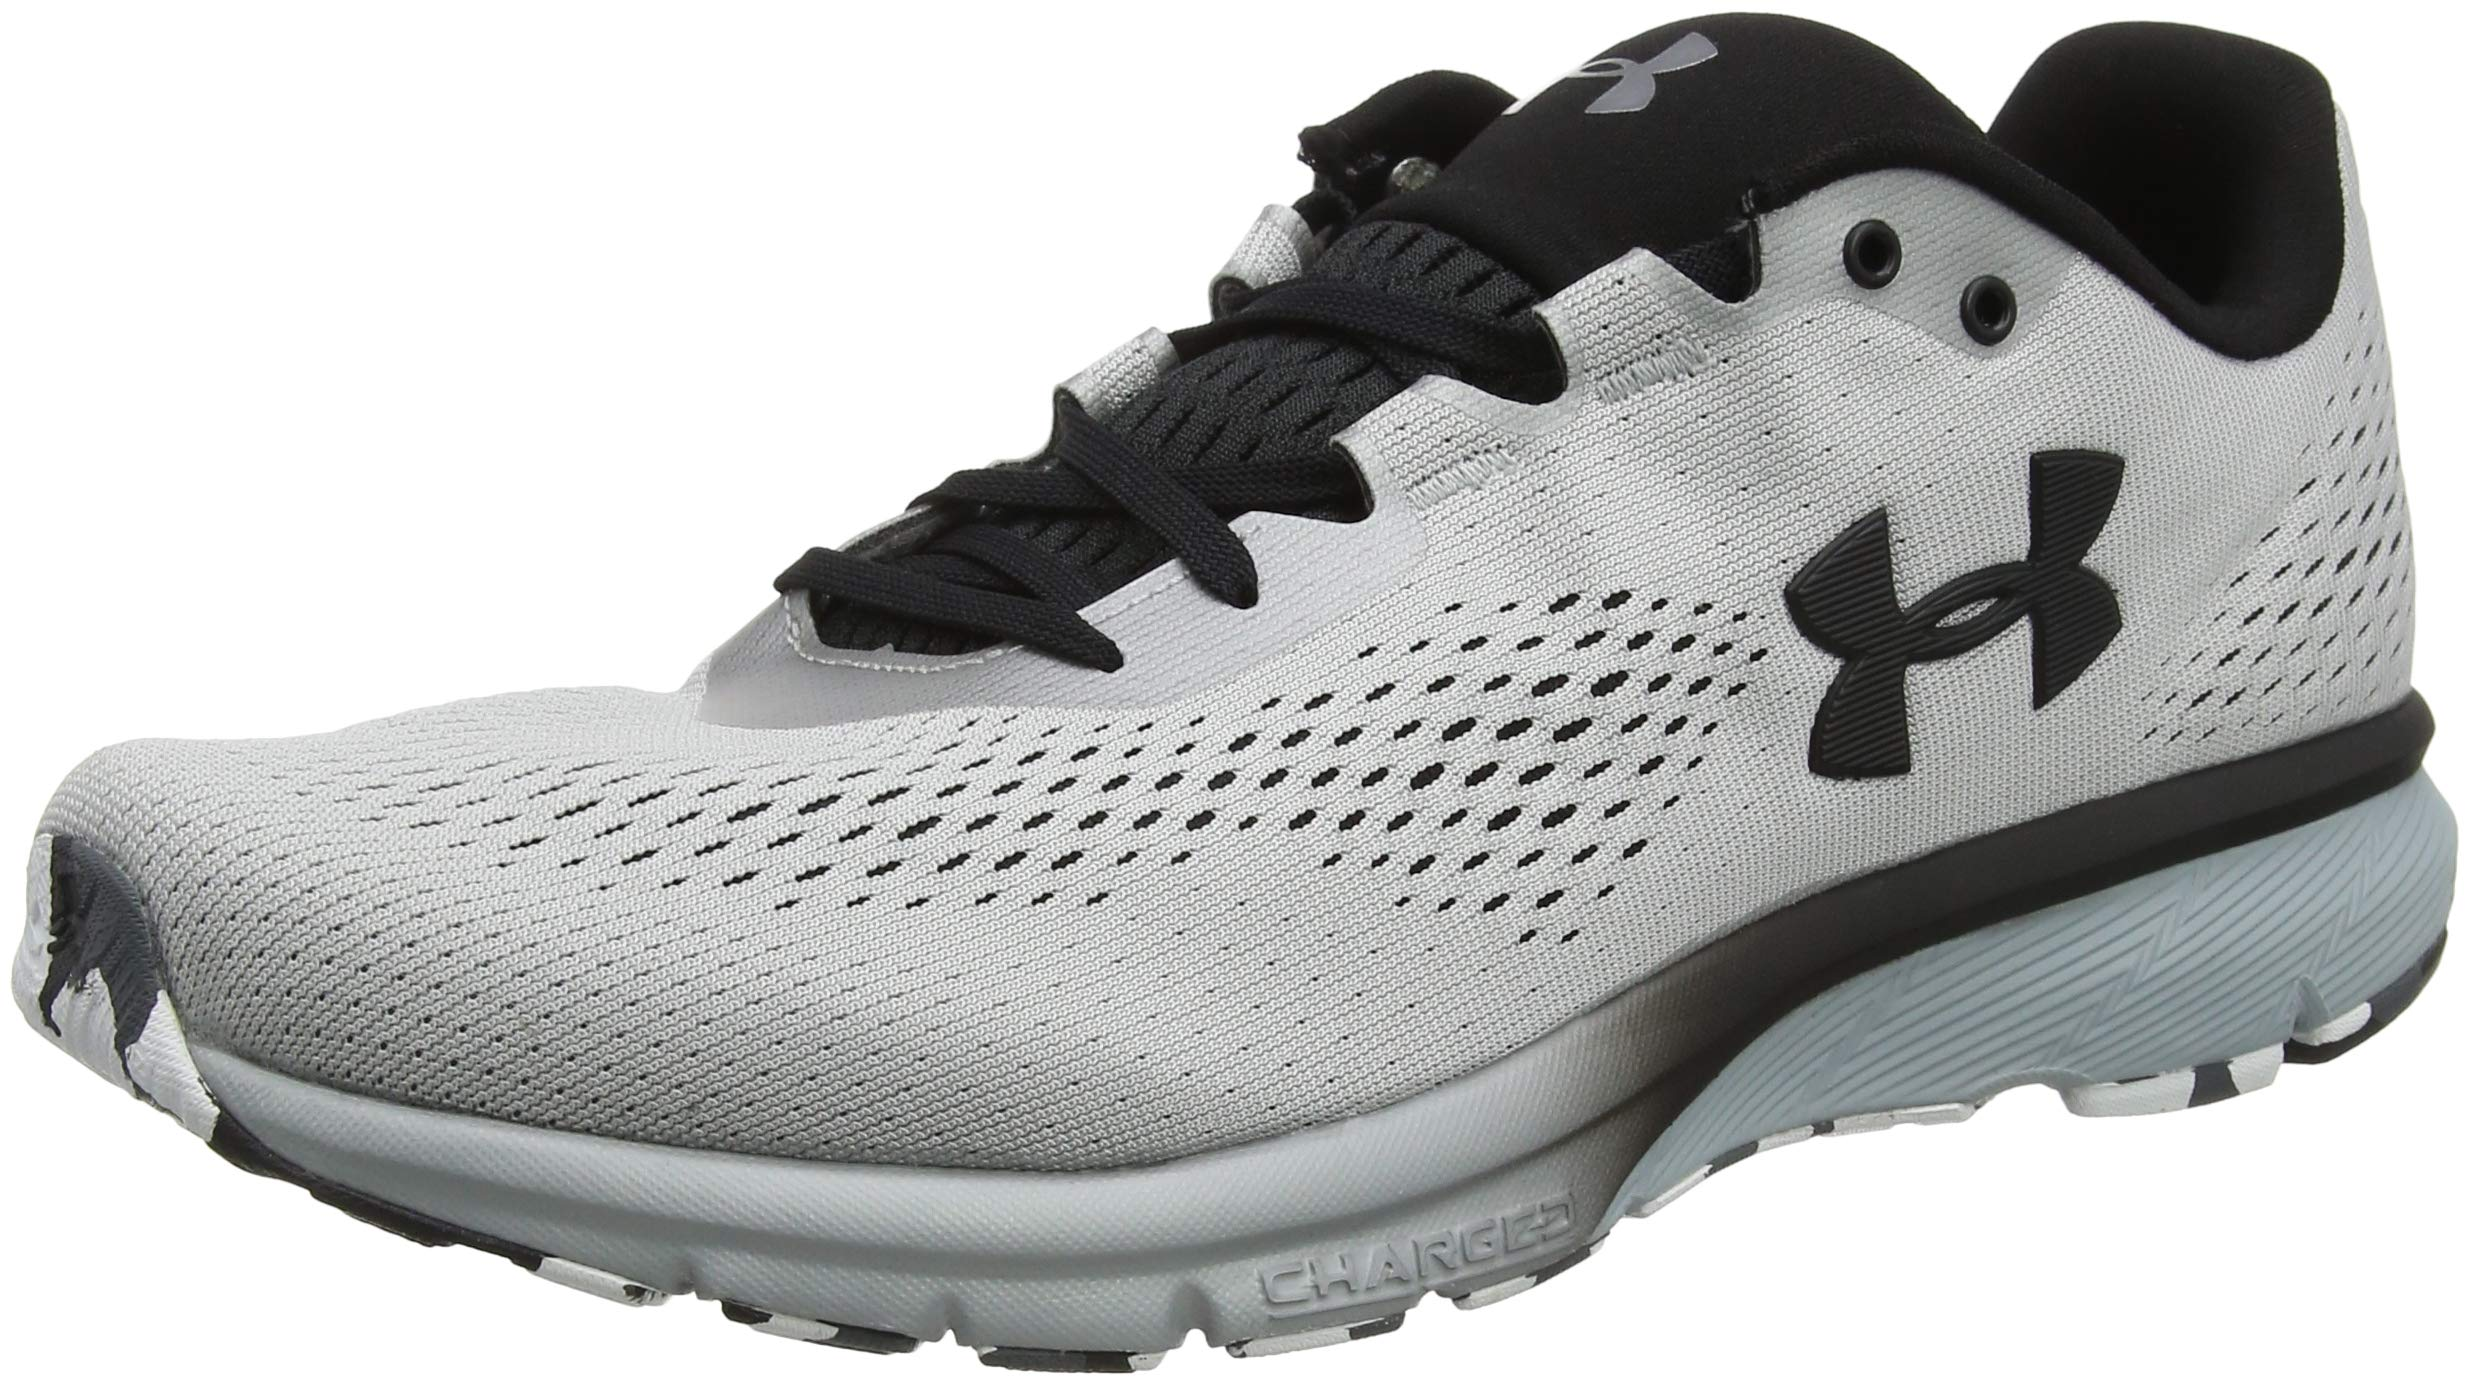 Under 5 SparkChaussures Ua 10040 Compétition Running Charged De Eu Armour HommeGrismetallic SilverBlackBlack dexBoC